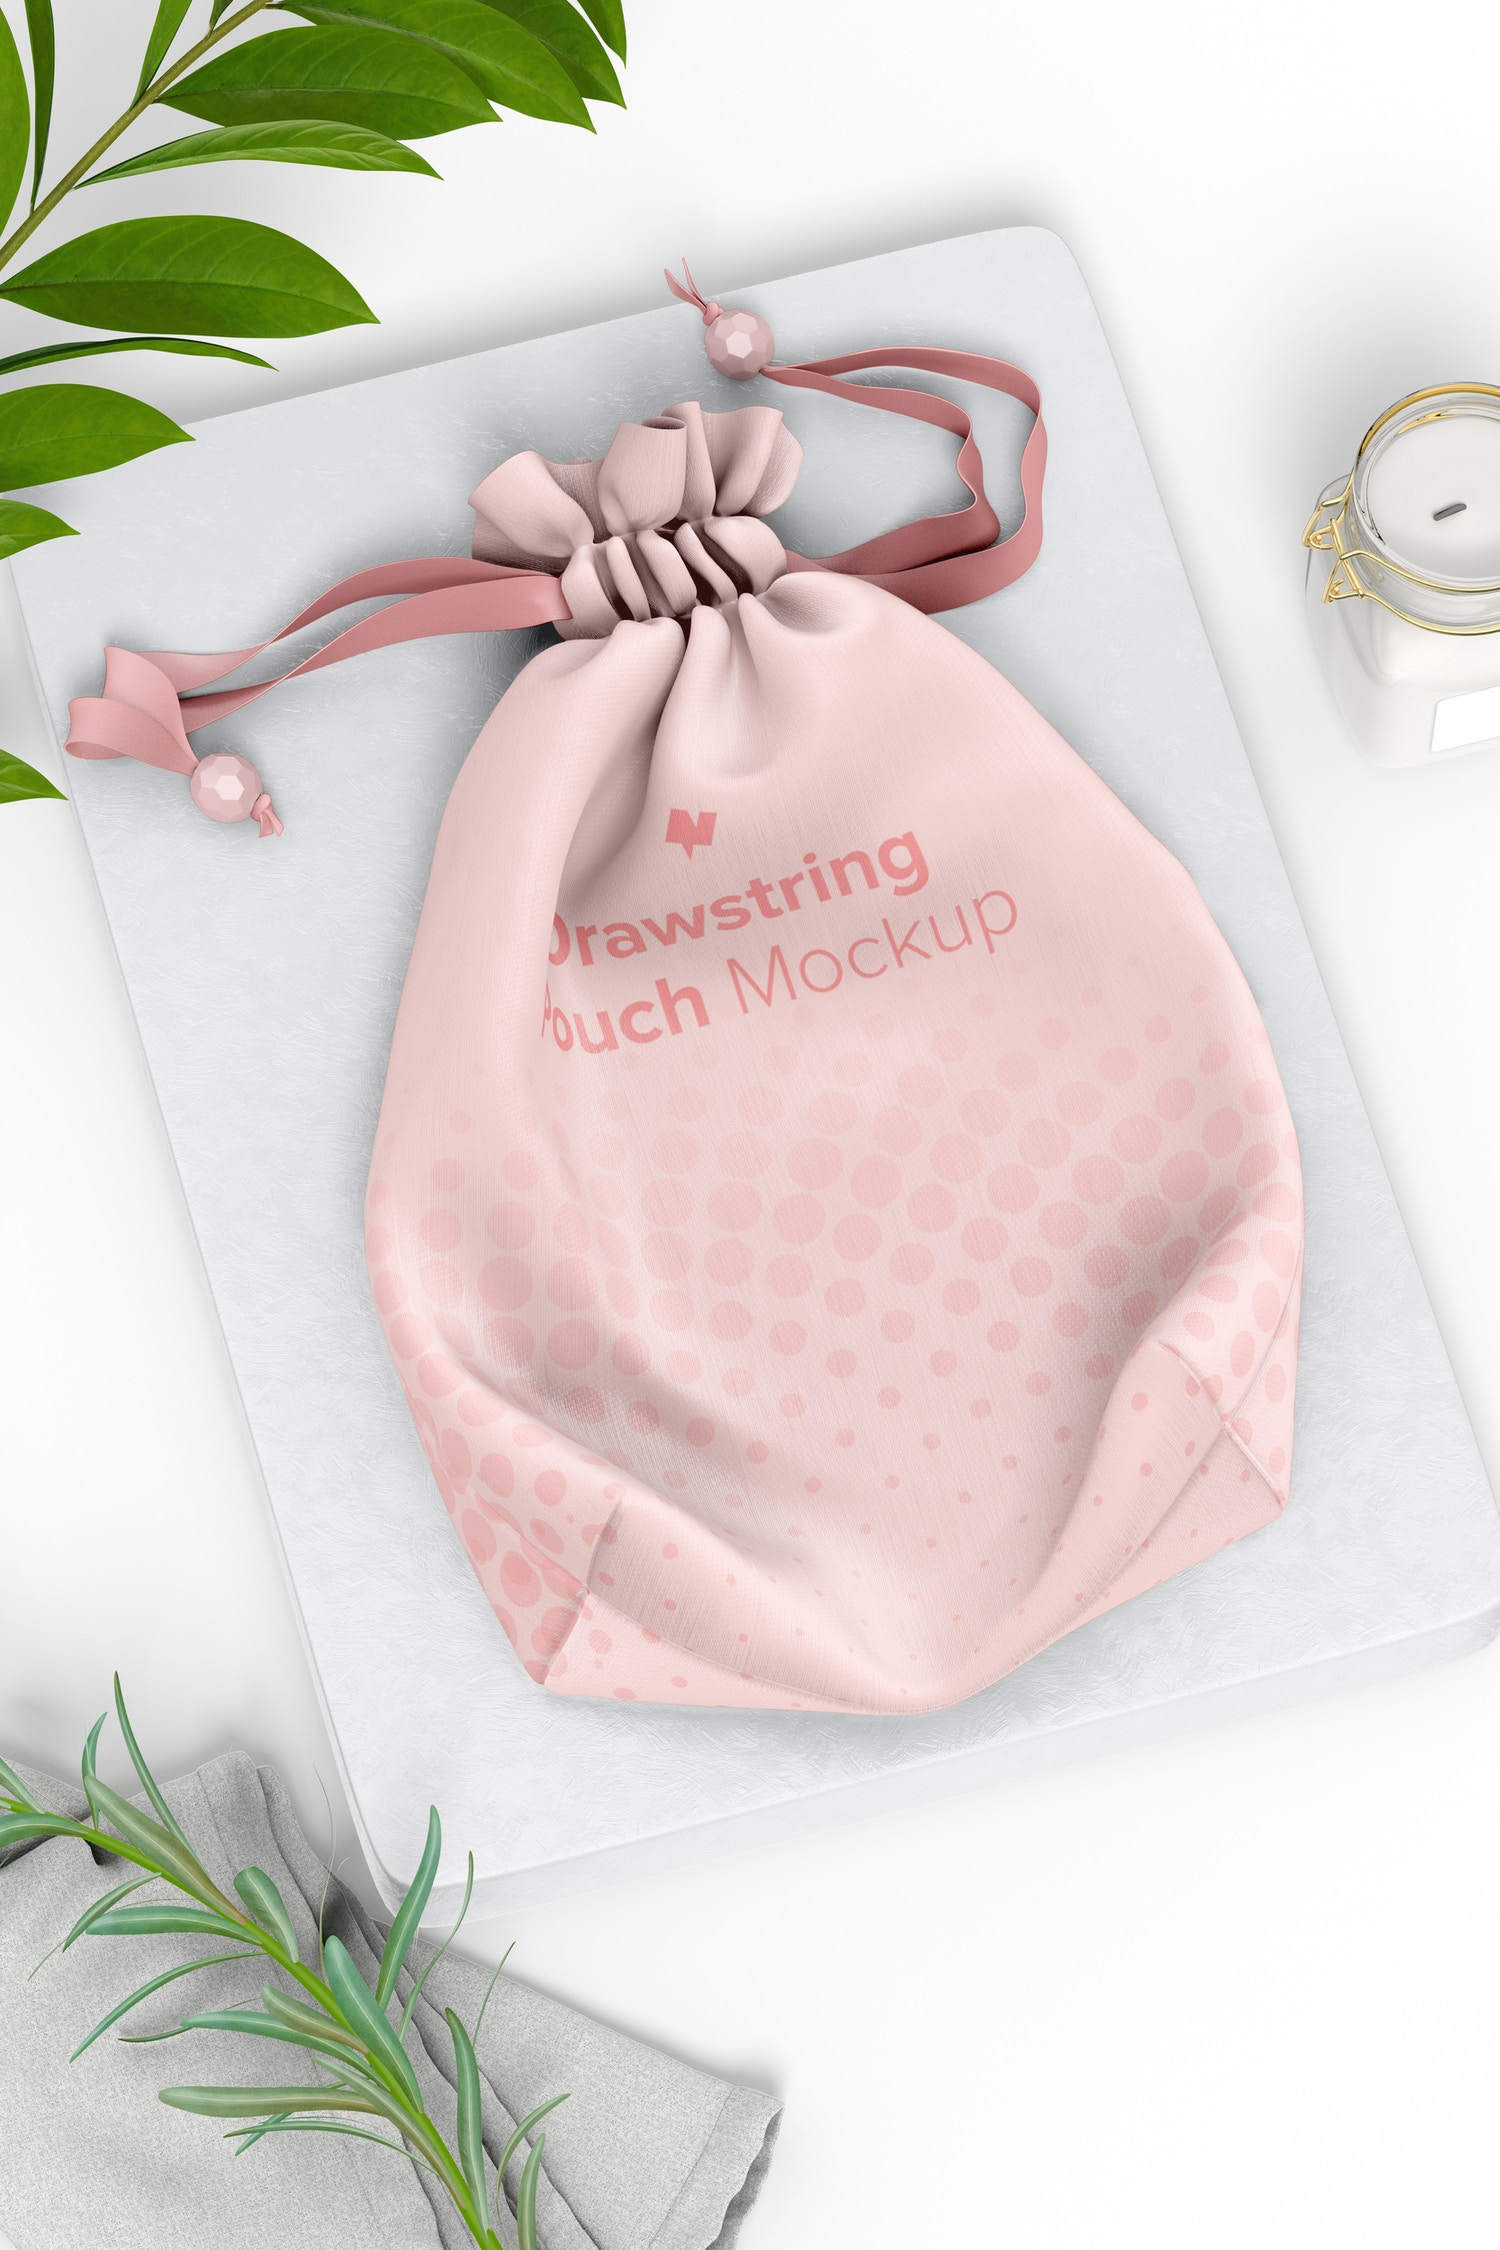 Drawstring Pouch Mockup, Perspective